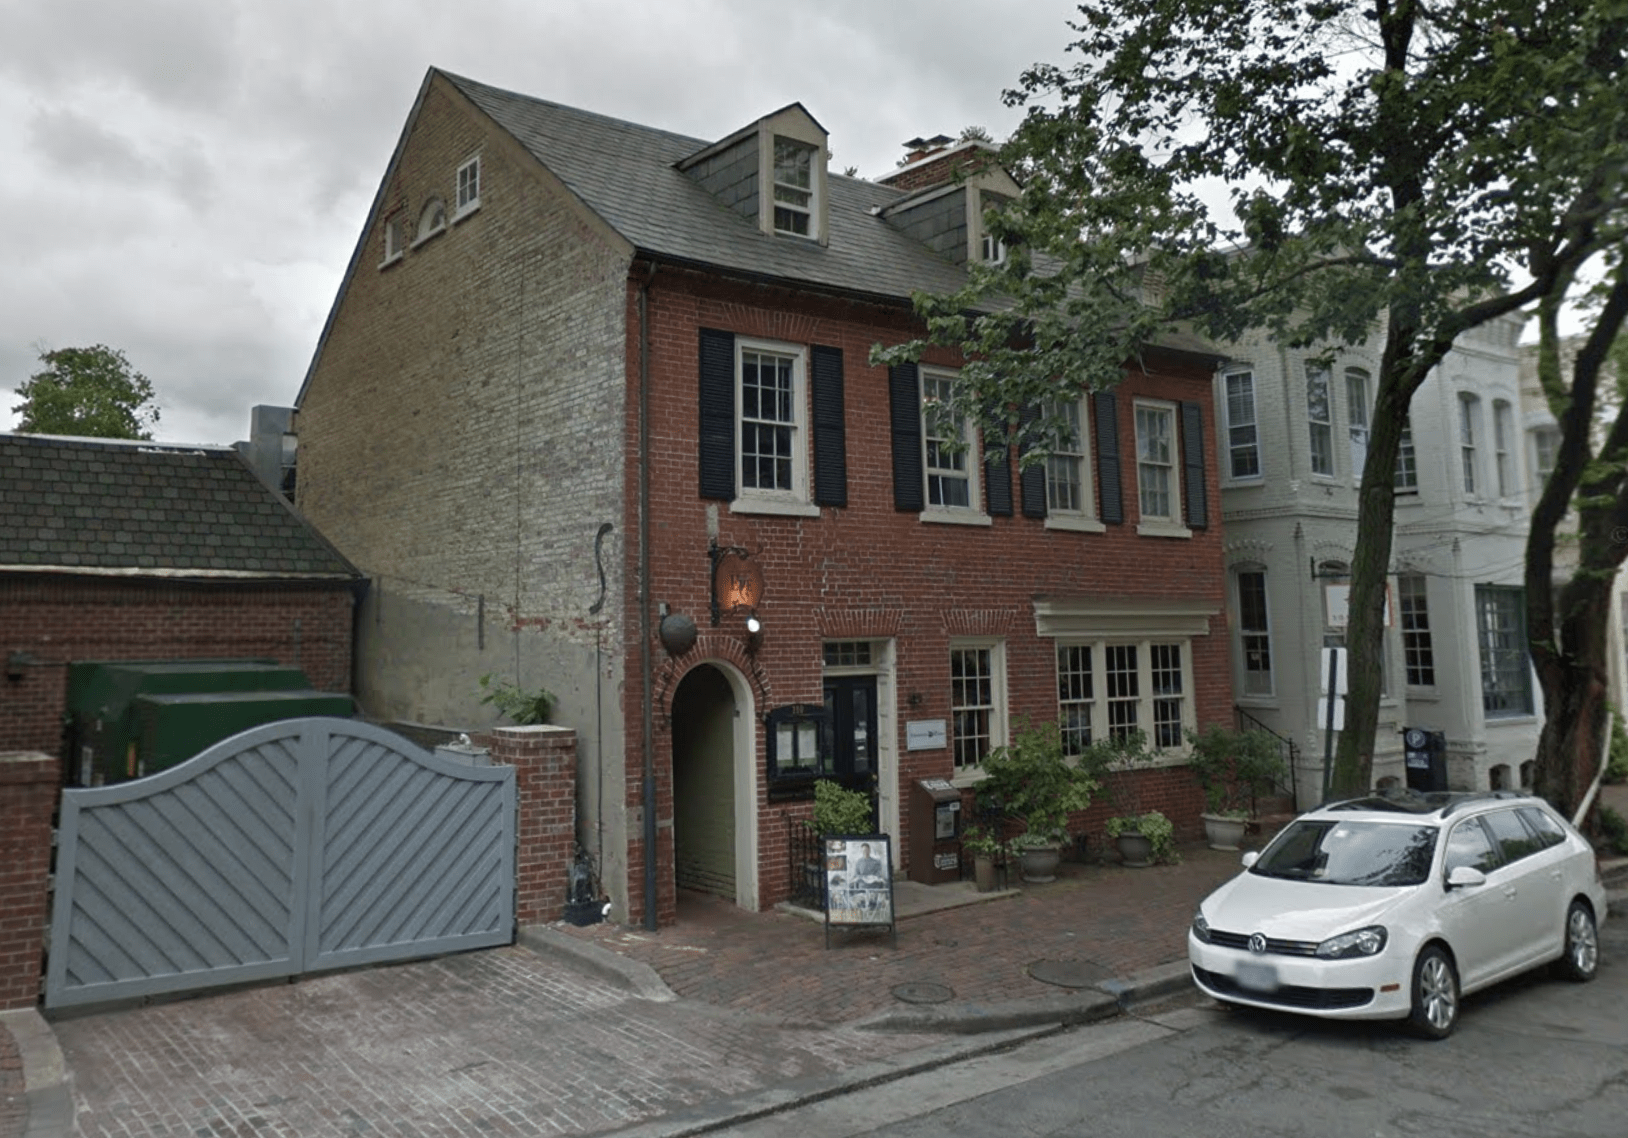 Restaurant Eve is closing June 2, 2018, in Old Town Alexandria, Virginia. The lease is up and the Chef Cathal Armstrong and his wife Meshelle along with business partner Todd Thrasher have decided to close it in order to focus on their other establishments. Details...